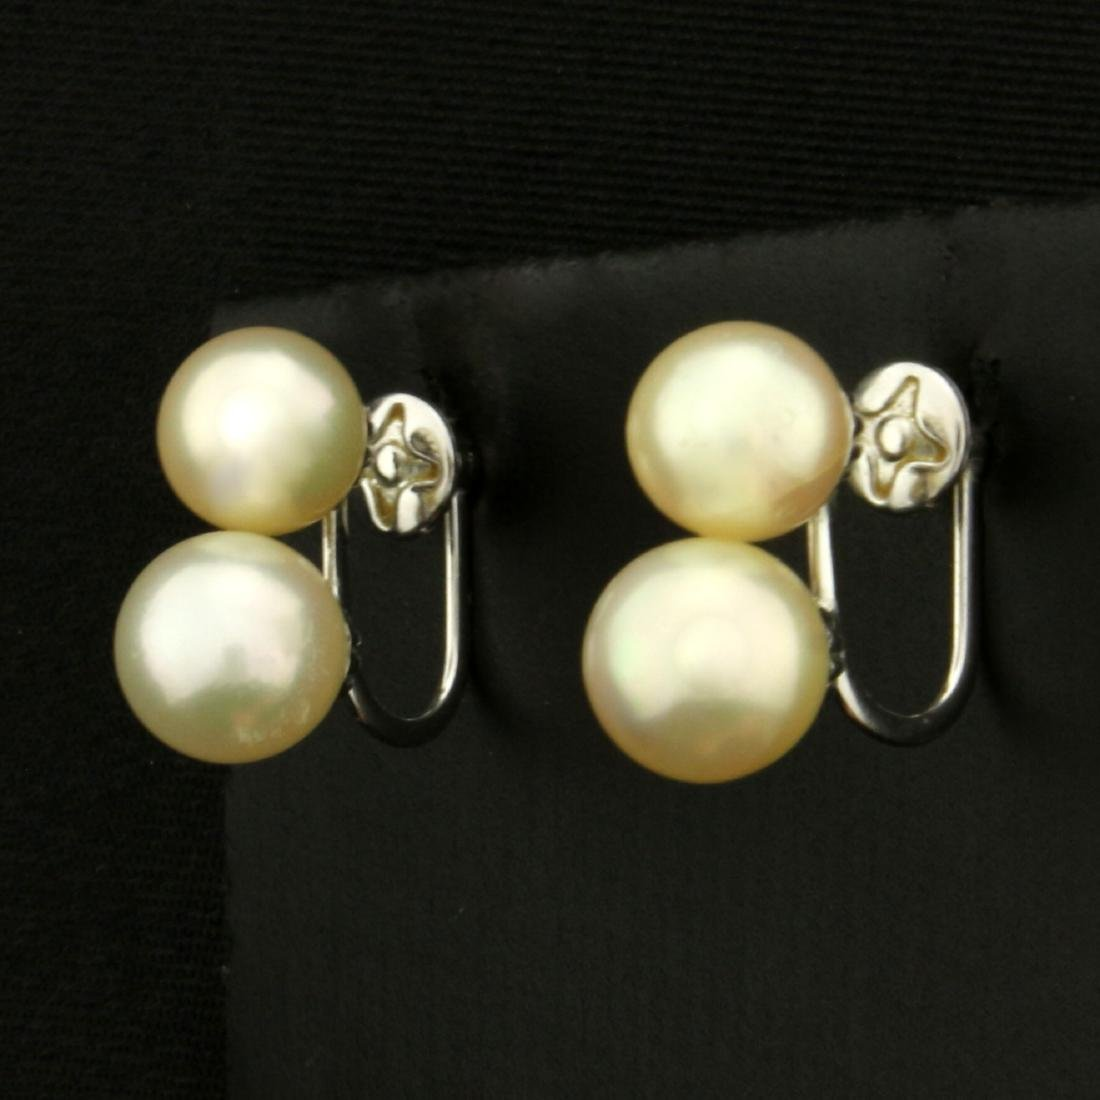 Vintage Screw Back Akoya Pearl Earrings in 14K White - 2